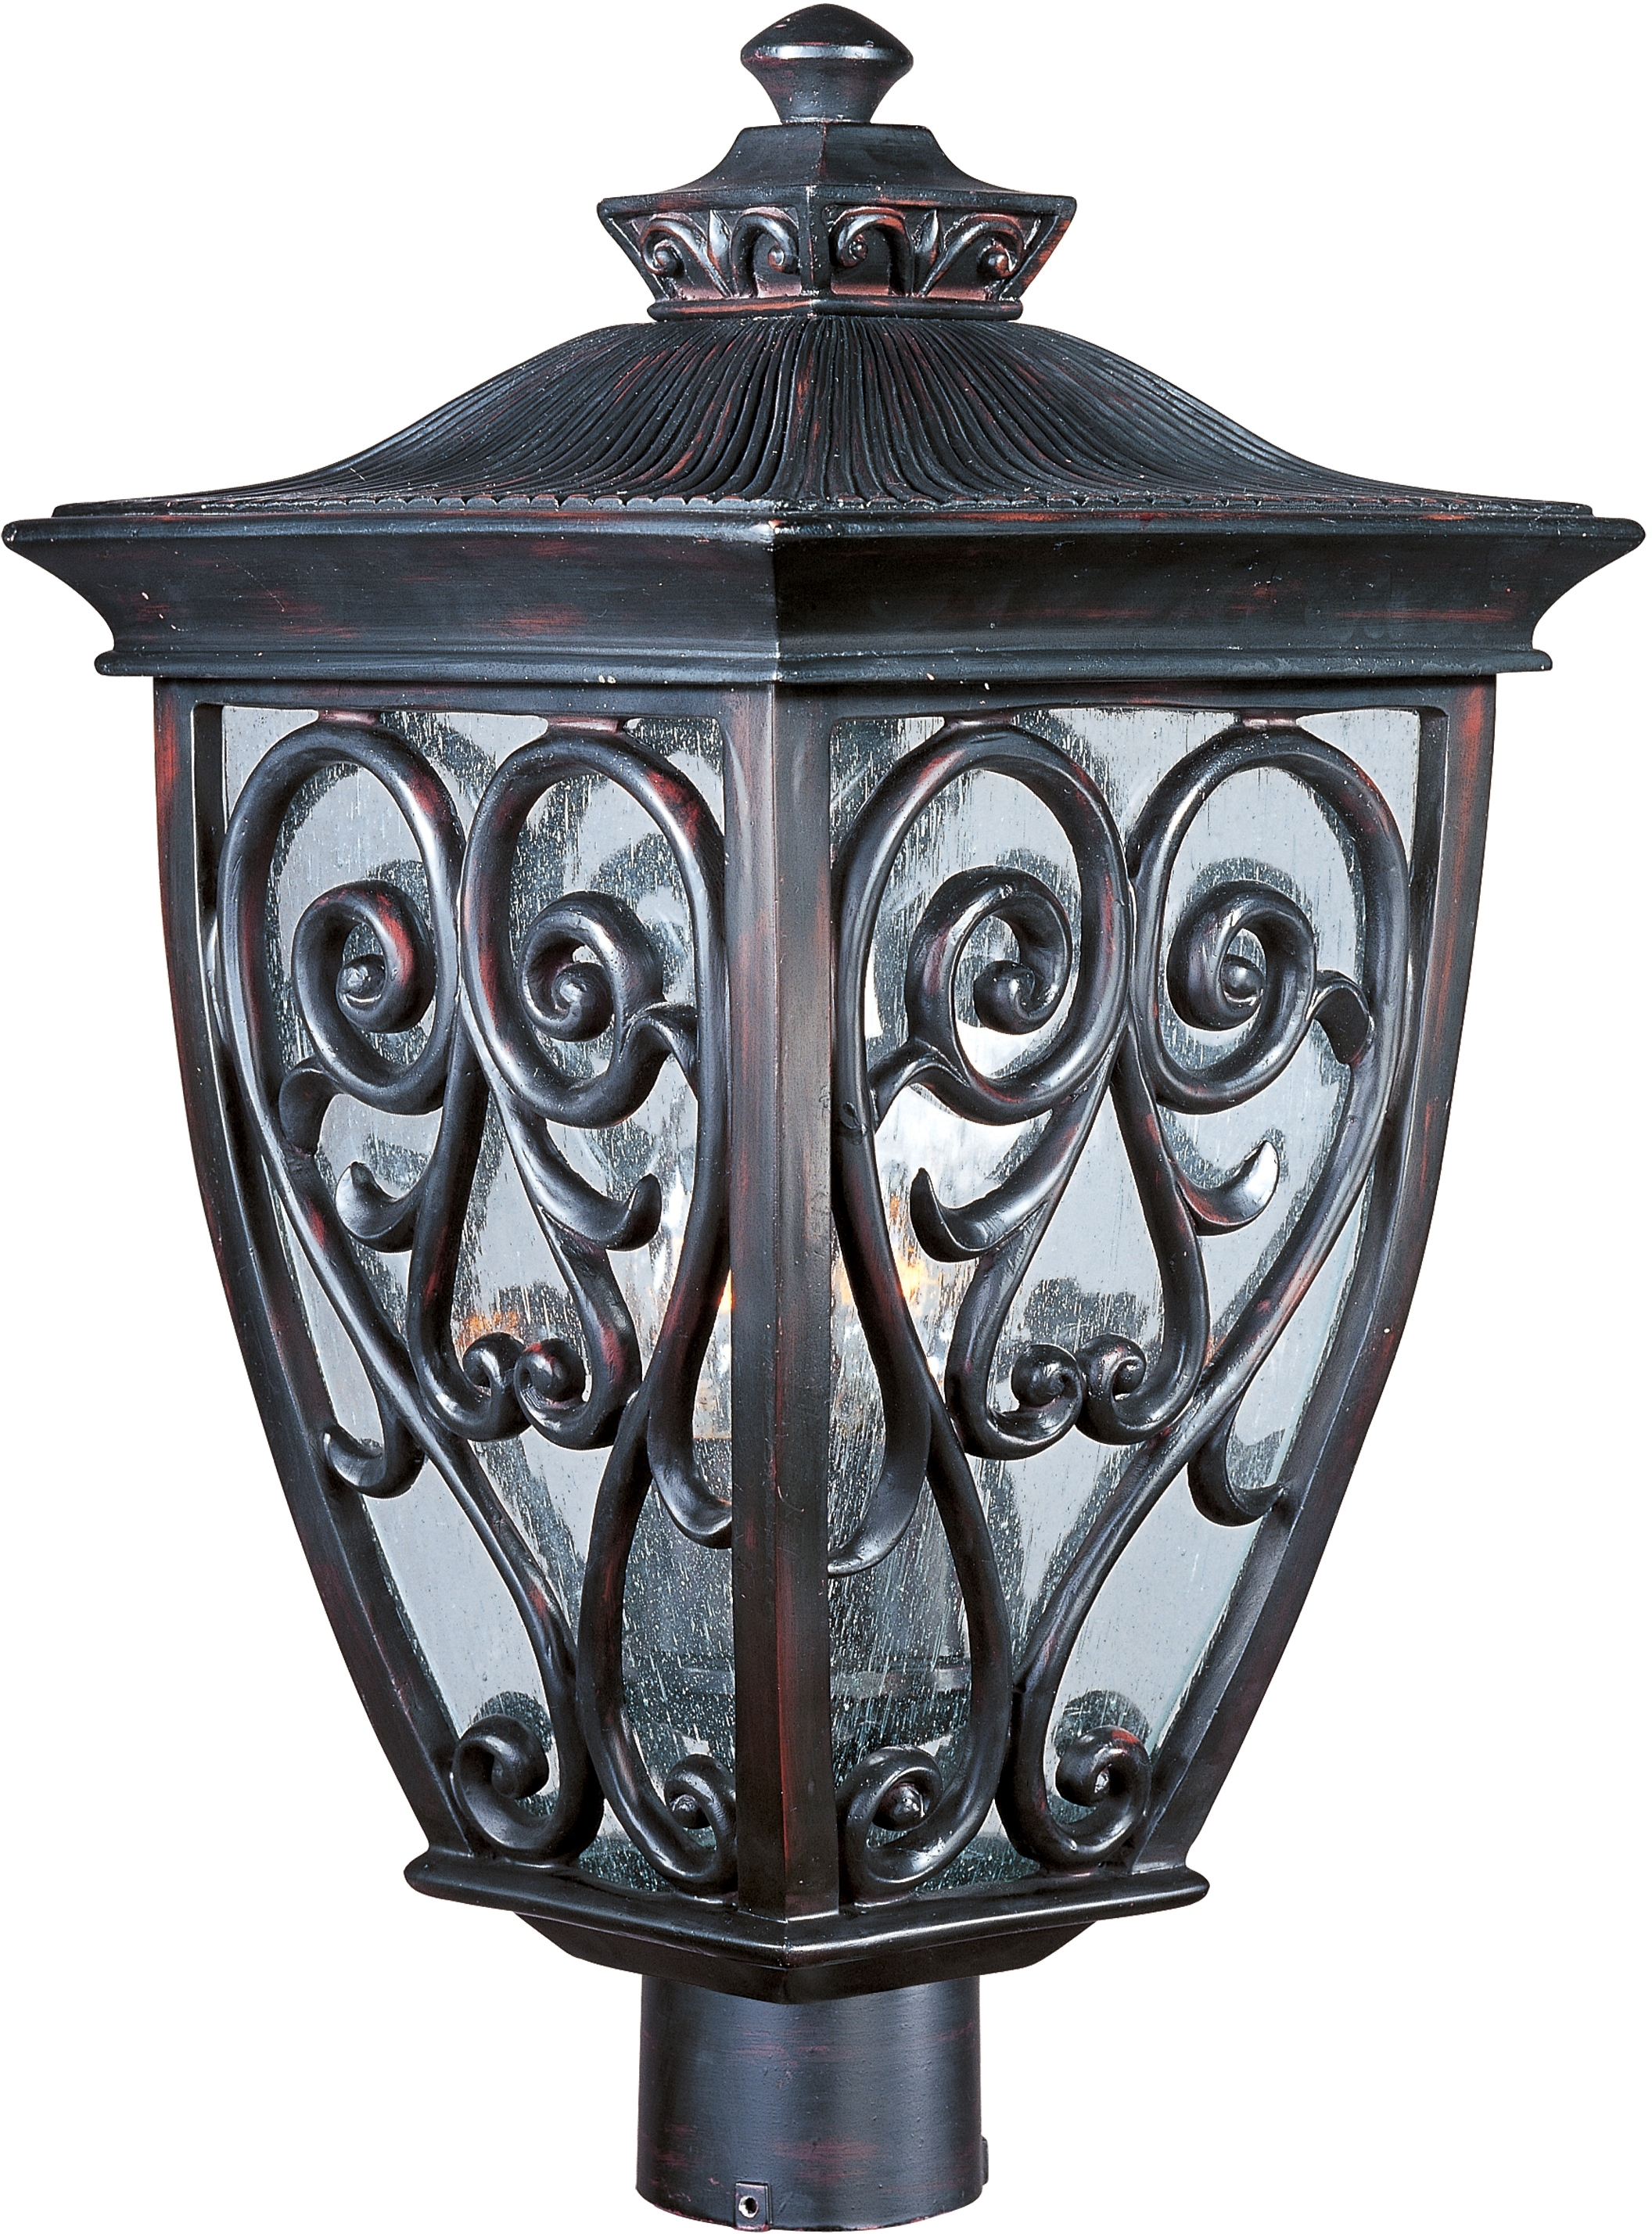 Maxim Intended For Popular Outdoor Pole Lanterns (View 5 of 20)